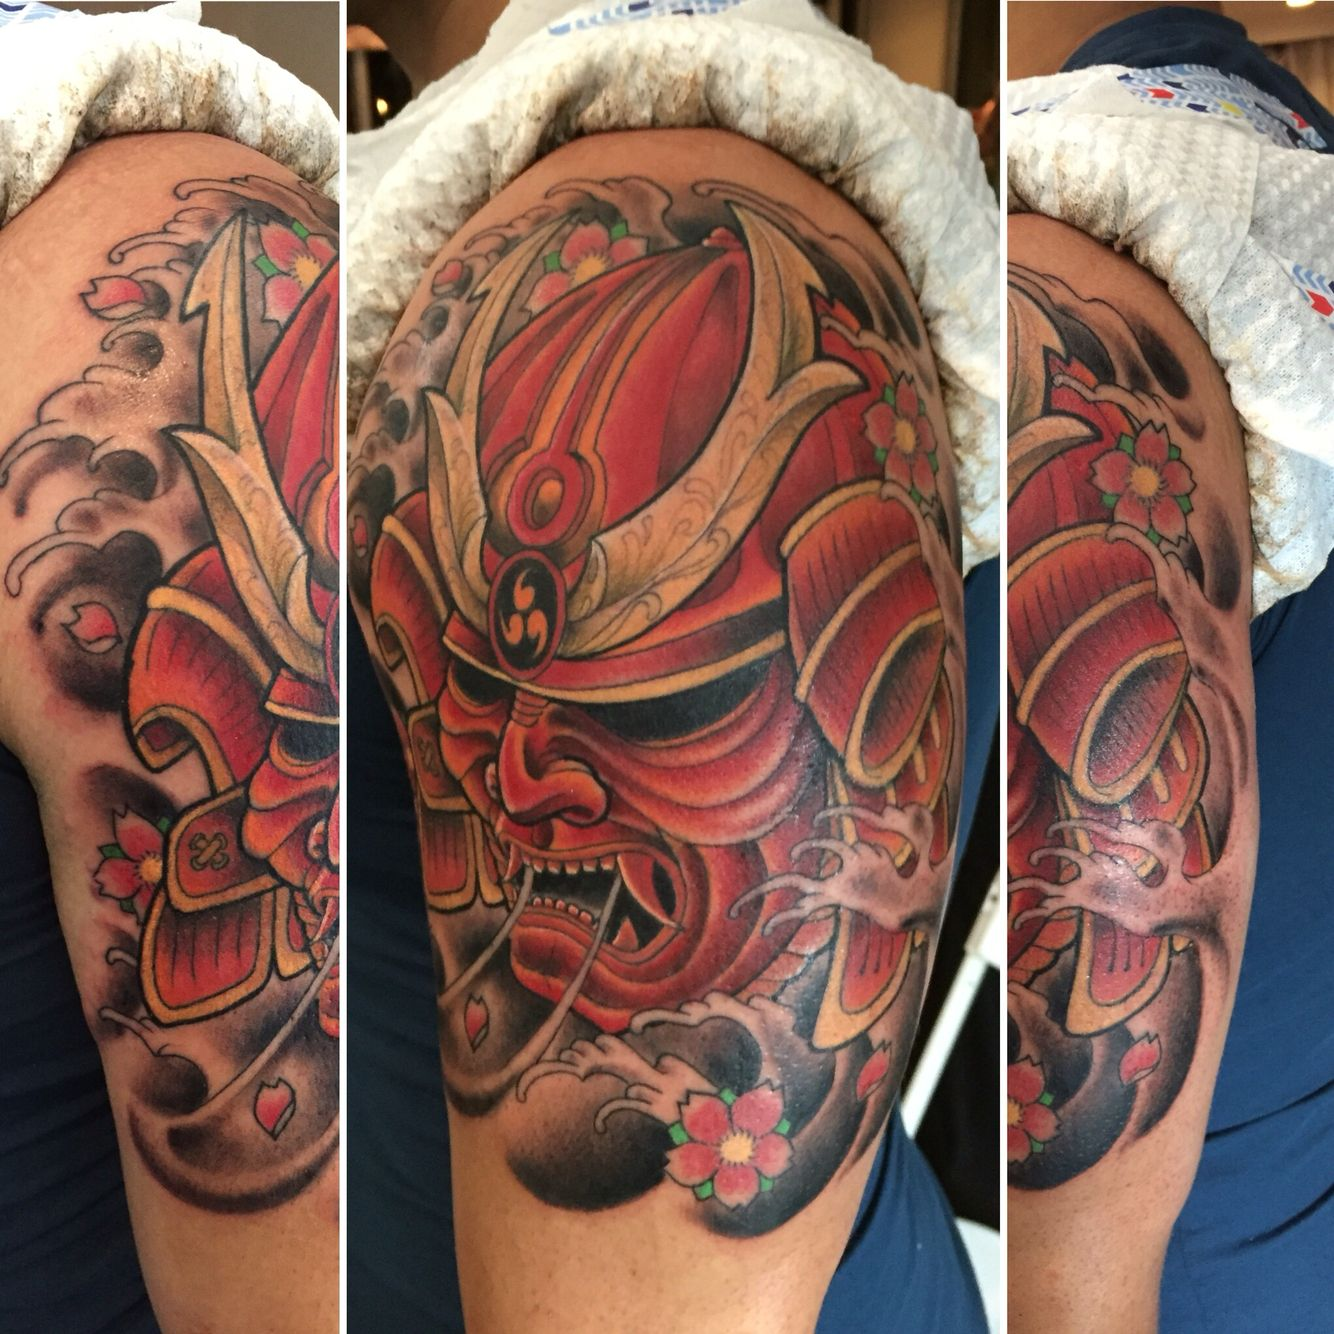 Oni Mask Tattoo: Mask Tattoo, Tattoos, Oni Mask Tattoo